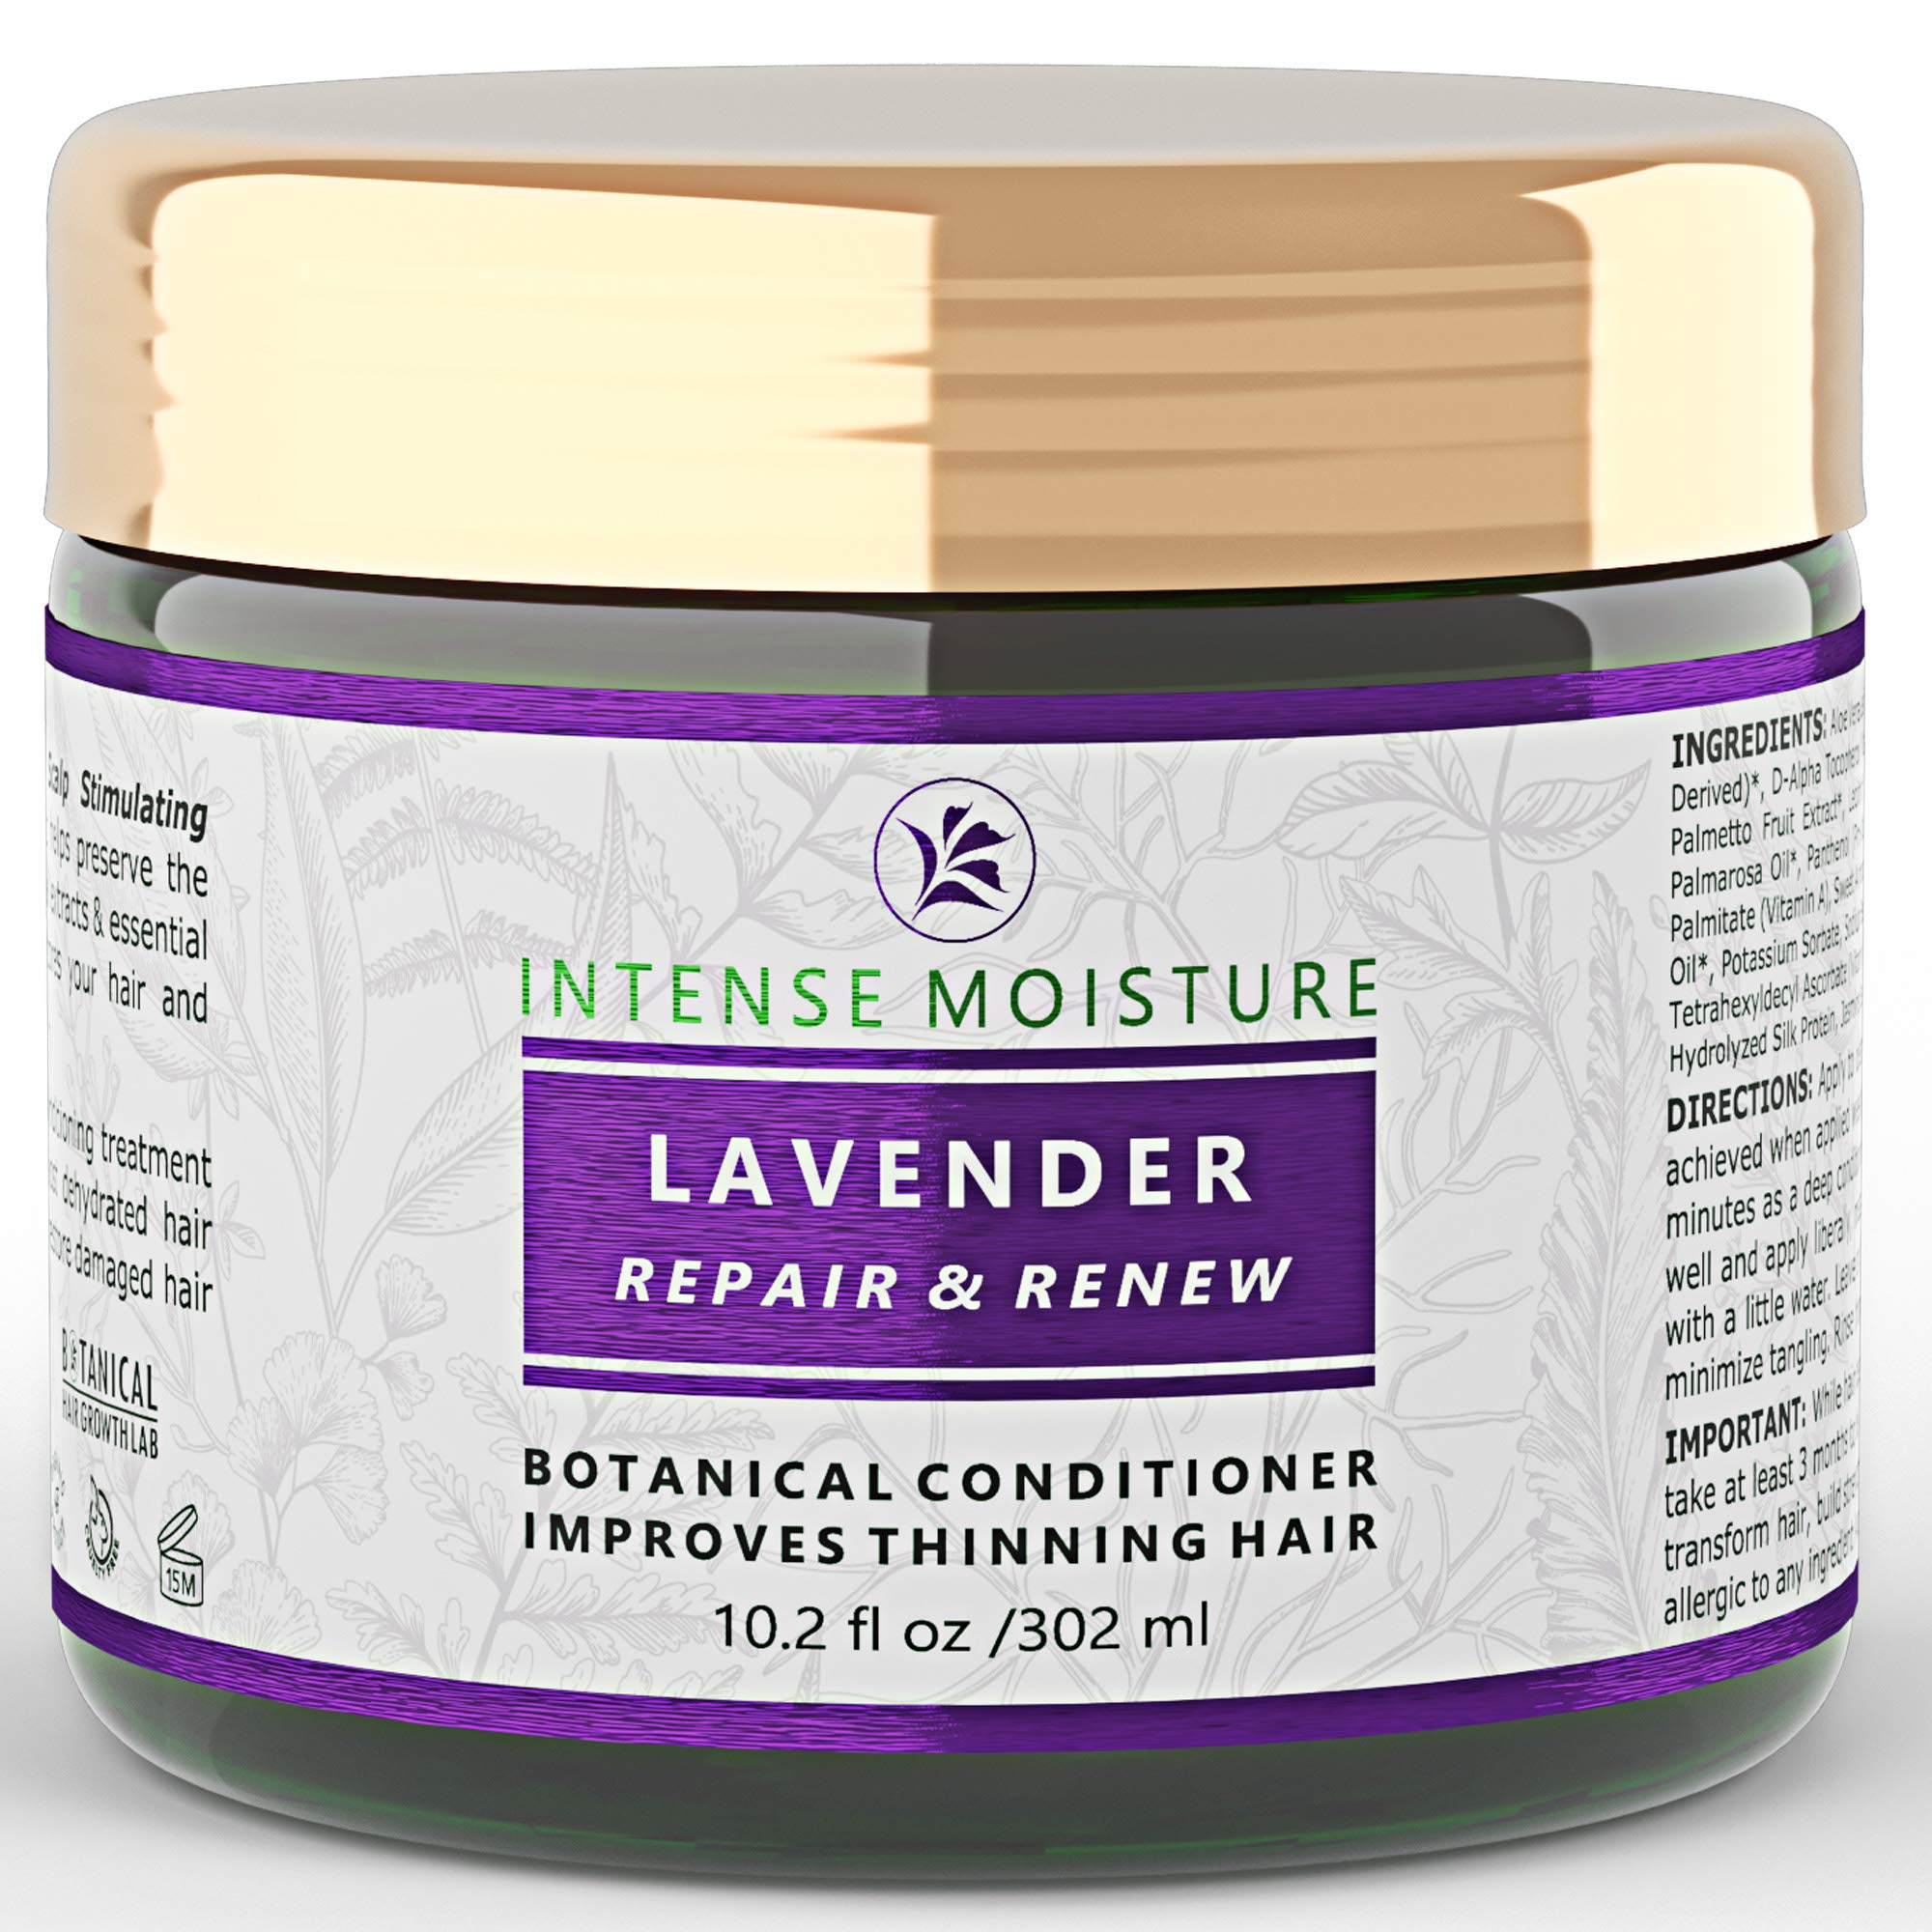 Hair Loss Conditioner Lavender - Cypress Intensive Repair For Weak Thinning Hair - Lab Formulated - Postpartum / Alopecia / DHT Bocking 10.2 Oz by BOTANICAL HAIR GROWTH LAB